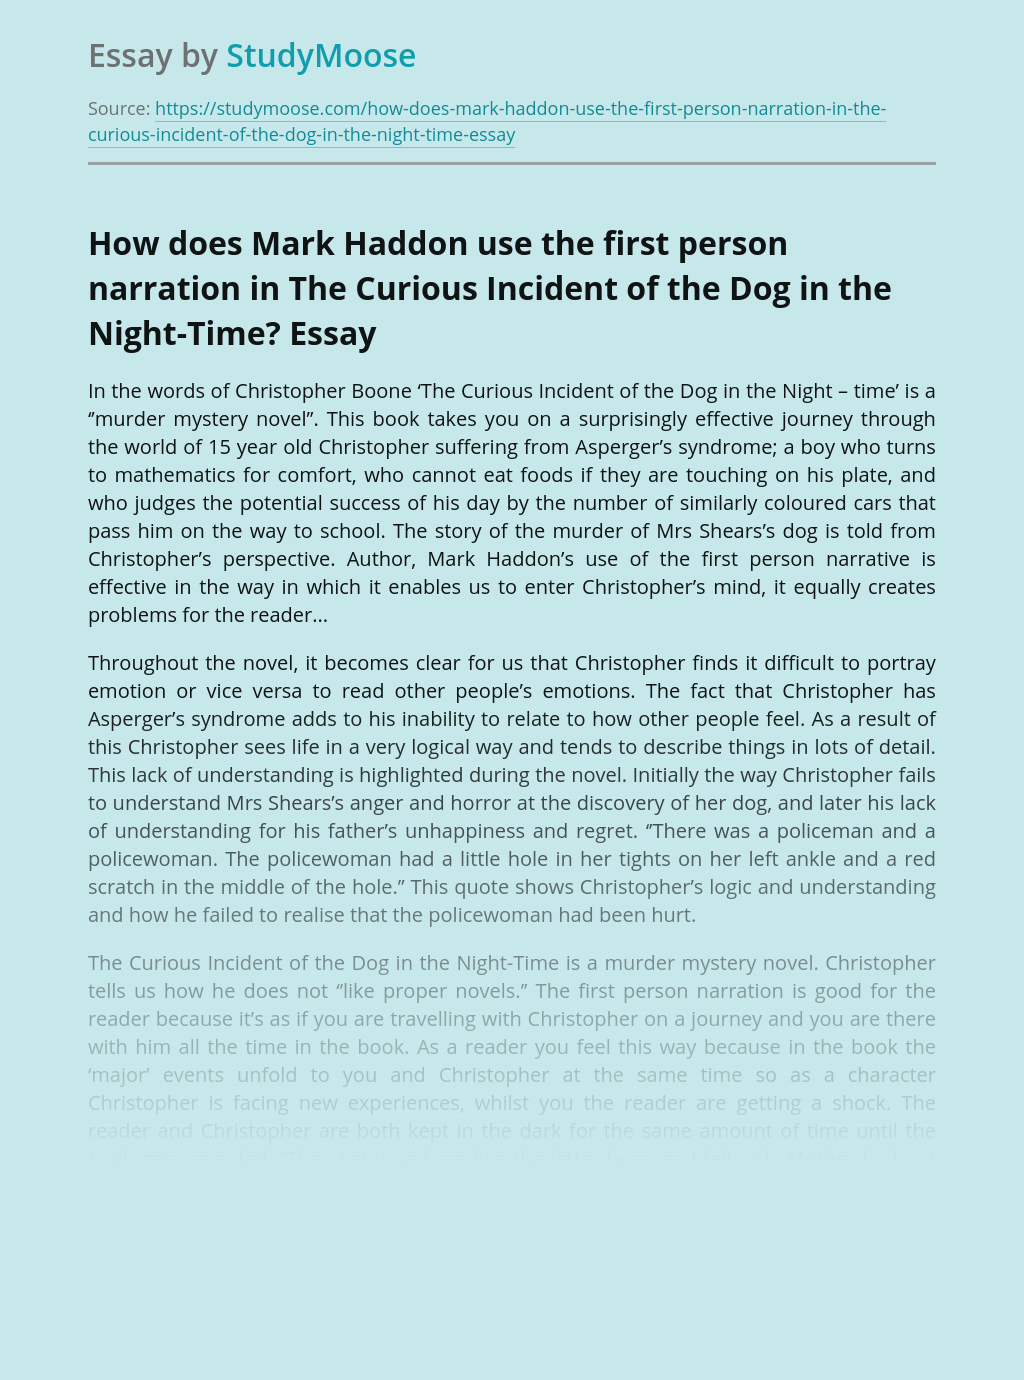 How does Mark Haddon use the first person narration in The Curious Incident of the Dog in the Night-Time?